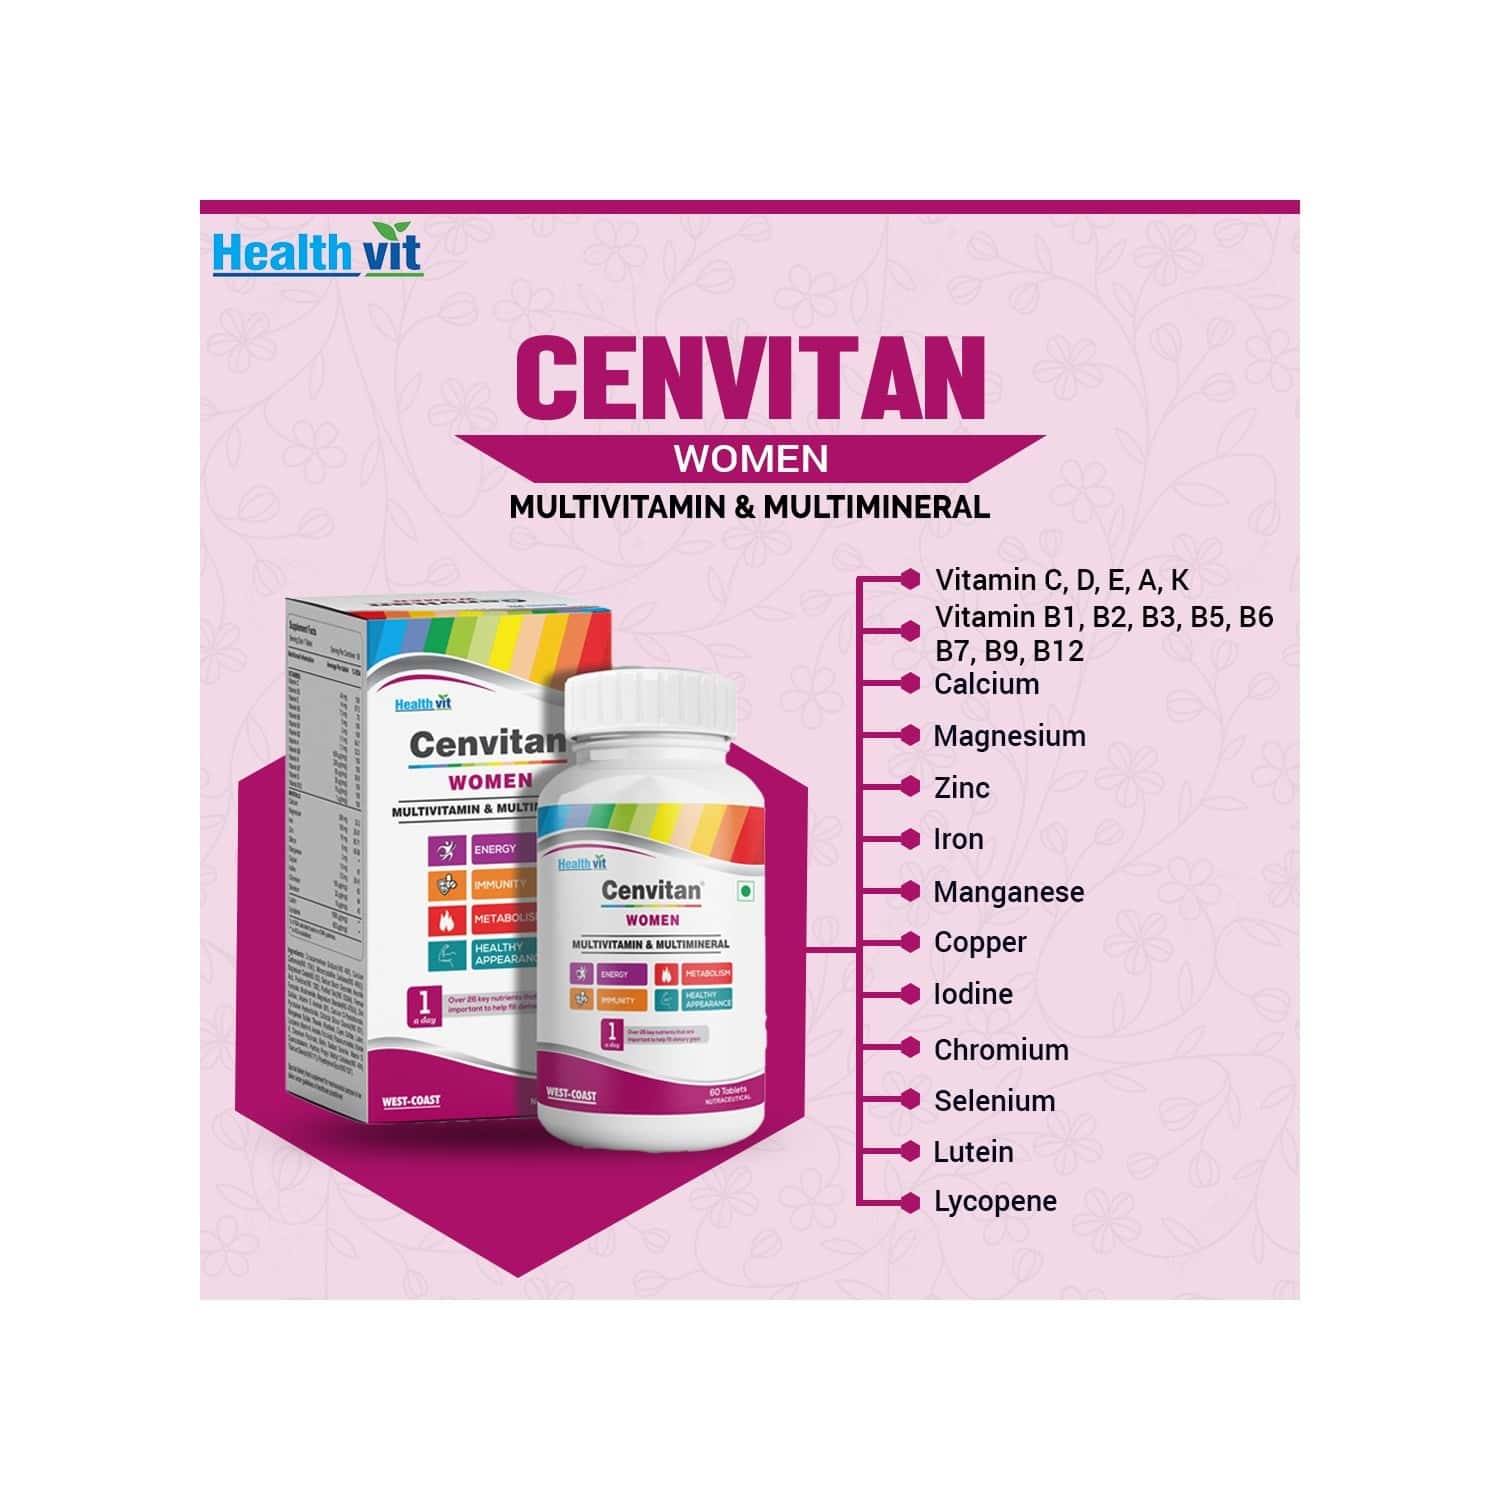 Healthvit Cenvitan Women 50+ Multivitamins And Multimineral 25 Nutrients (vitamins And Minerals) - 60 Tablets